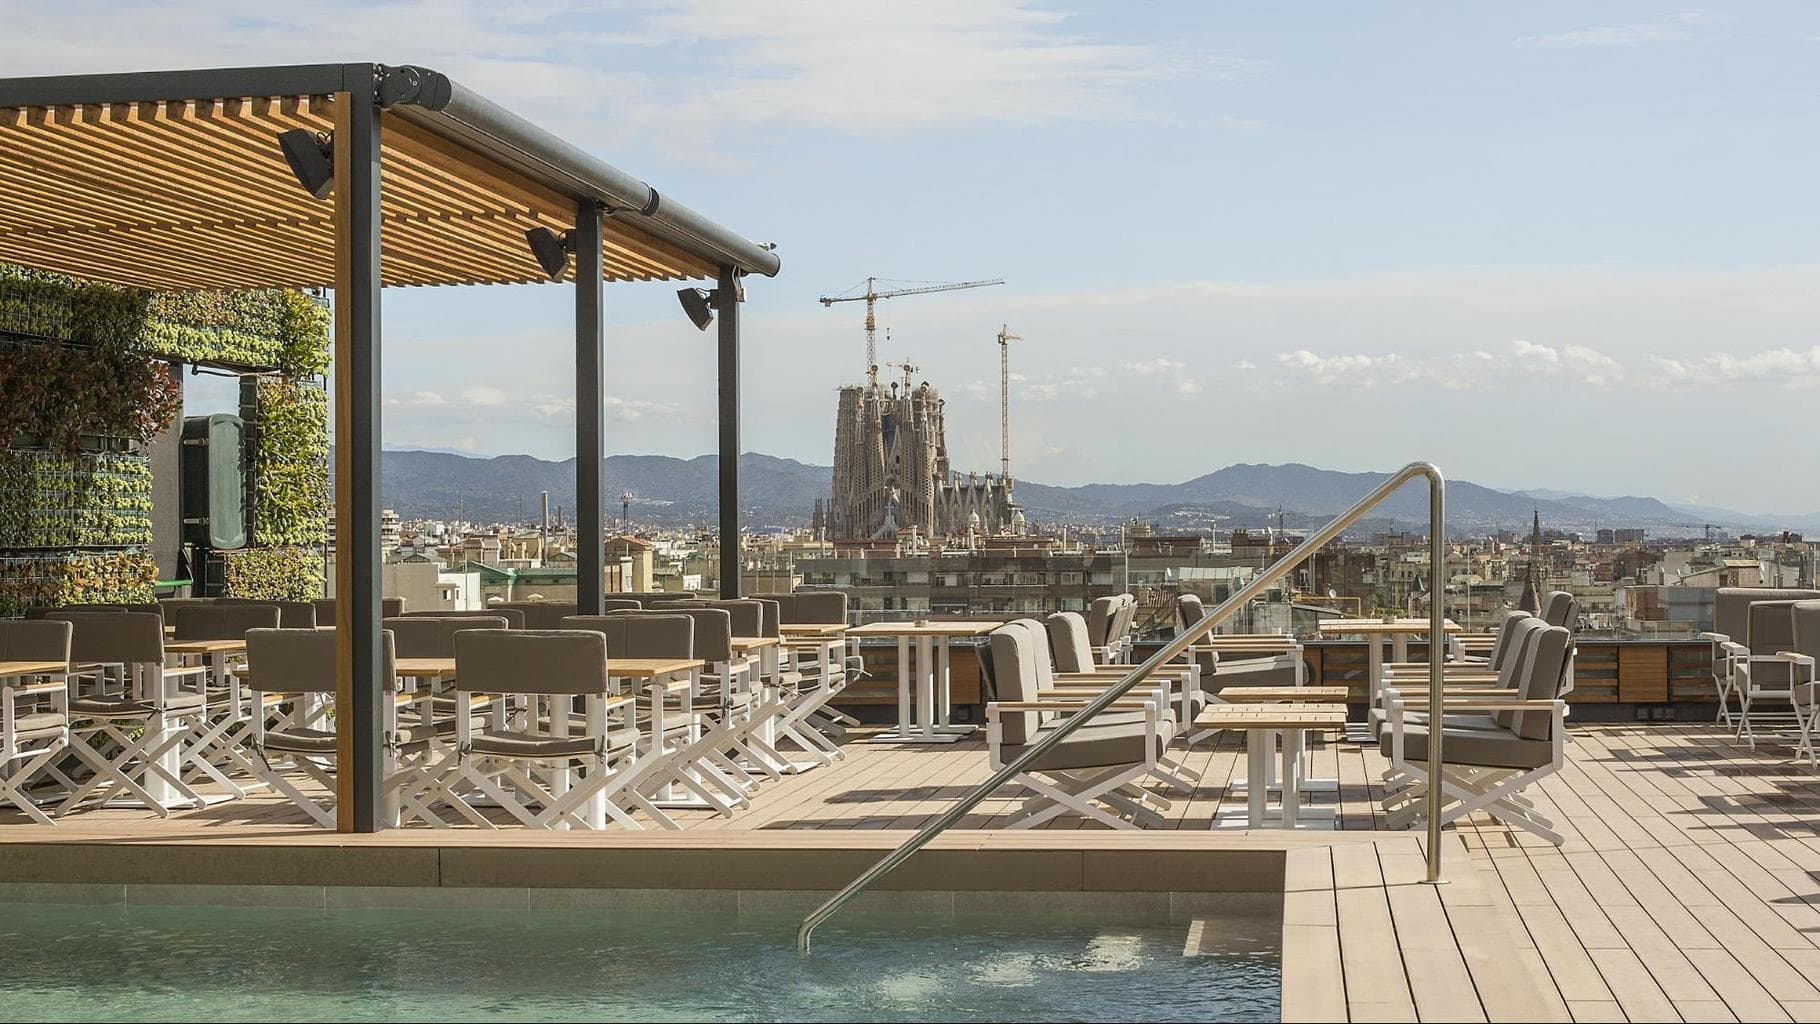 La Dolce Vitae rooftop pool, bar and restaurant at Majestic Hotel & Spa Barcelona